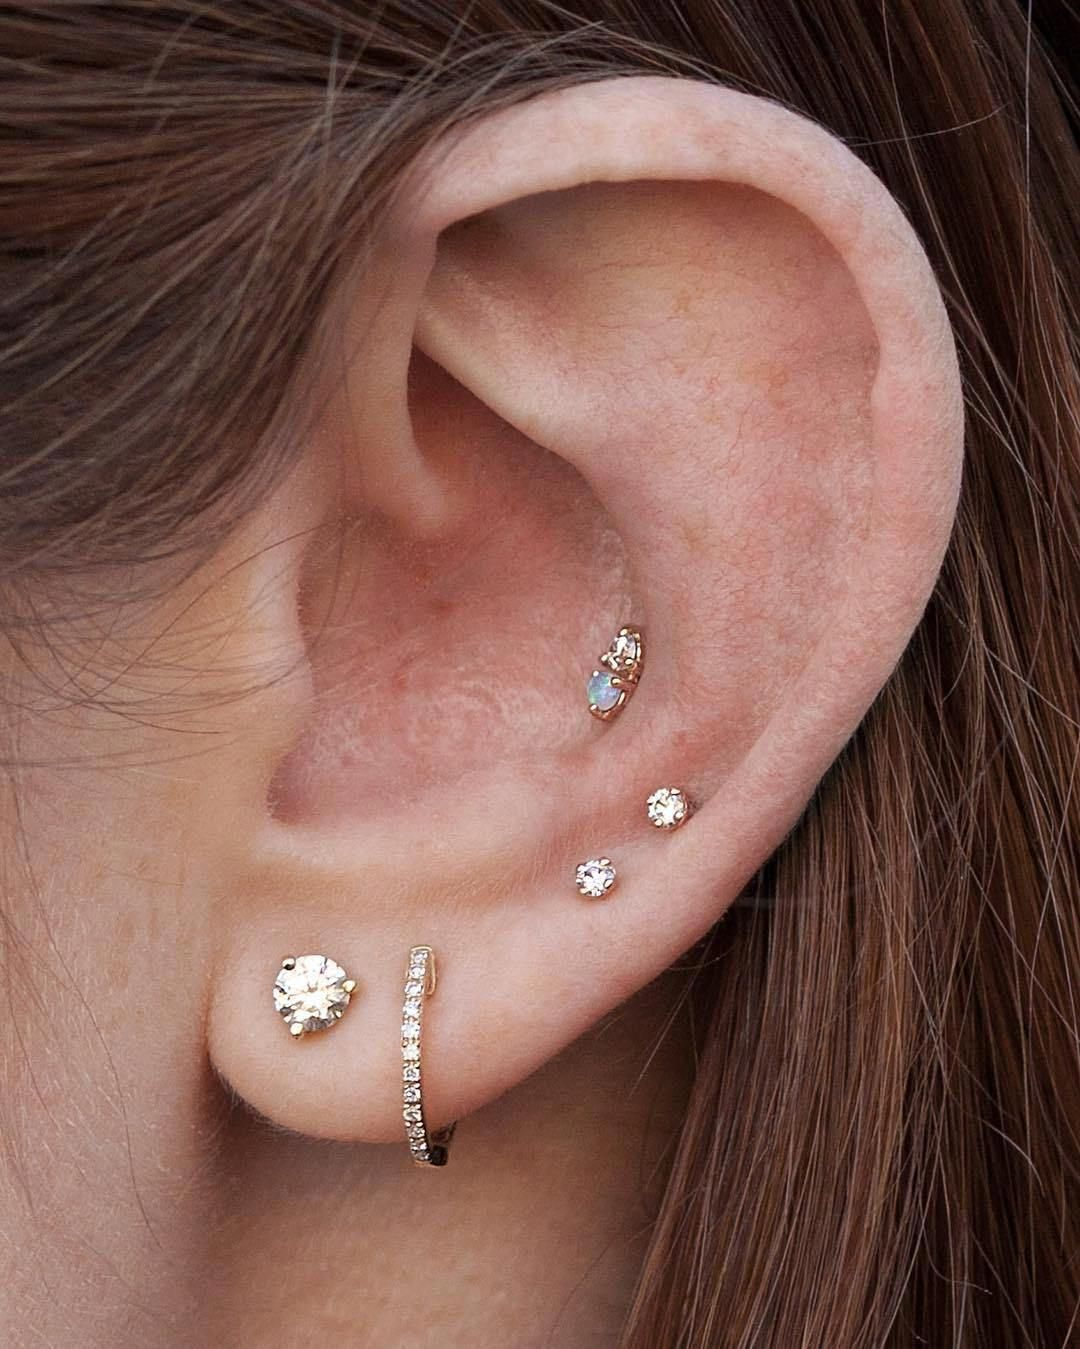 Nose piercing day 3  The Everything Ear Piercing Guide Get to Know Every Type of